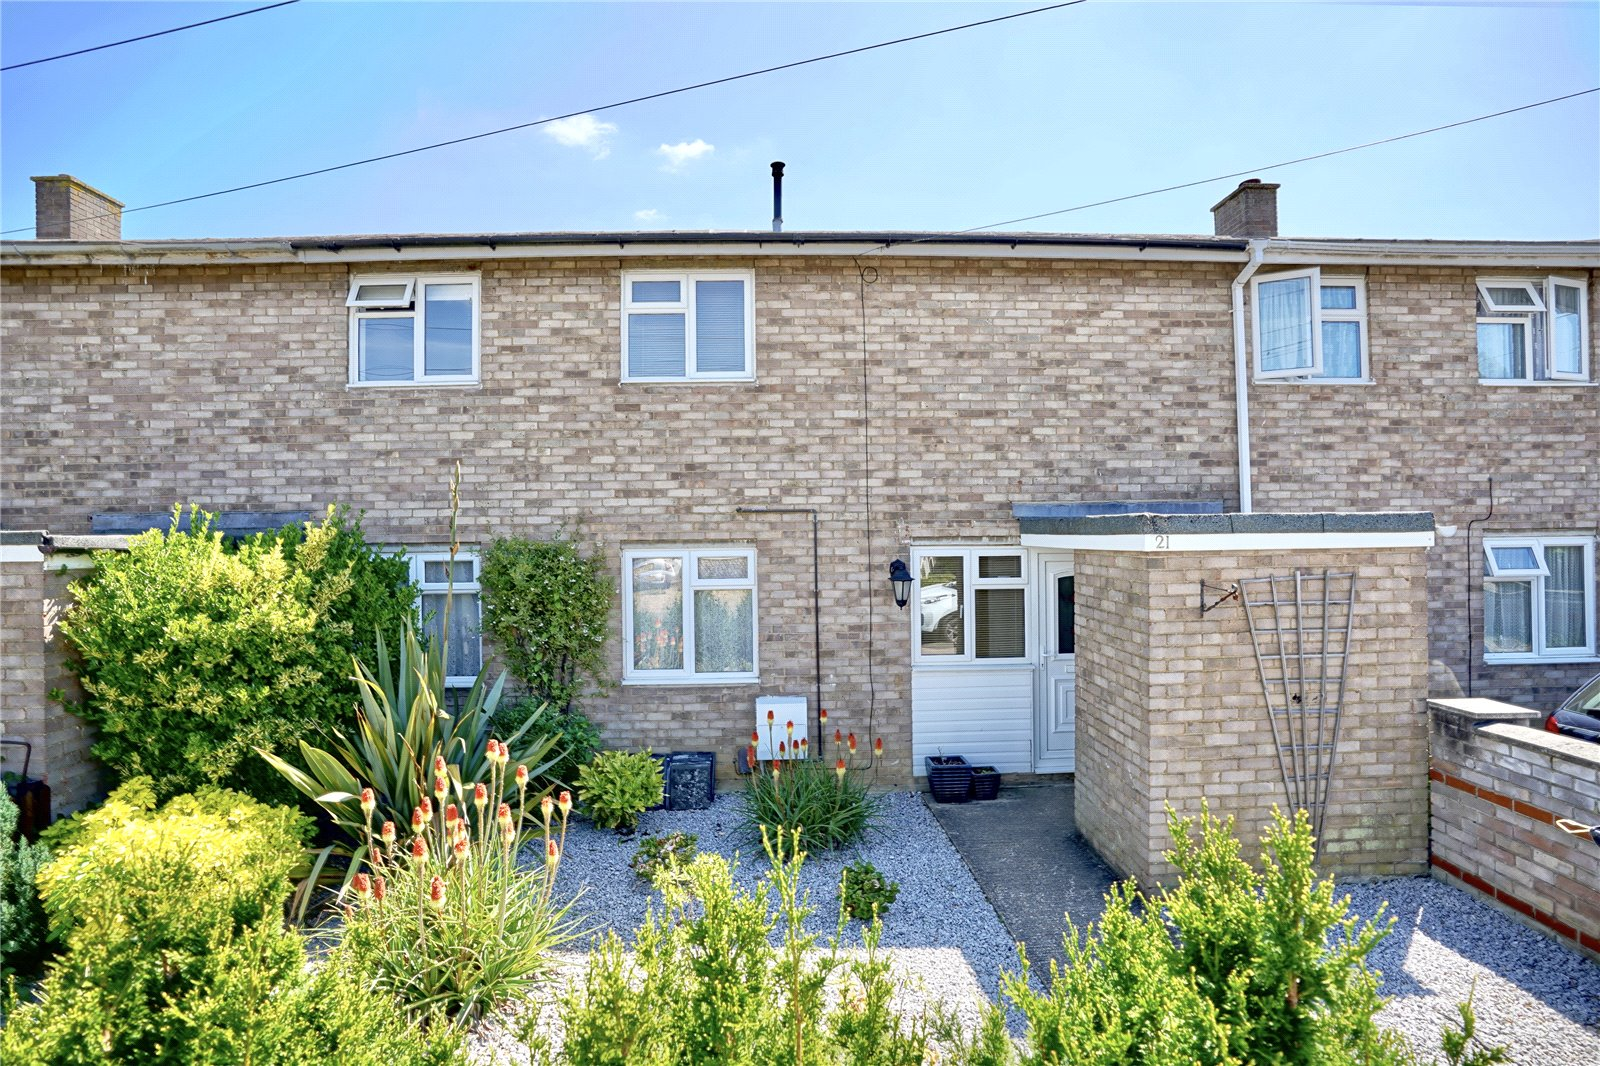 3 bed house for sale in Kings Road, Eaton Socon, PE19